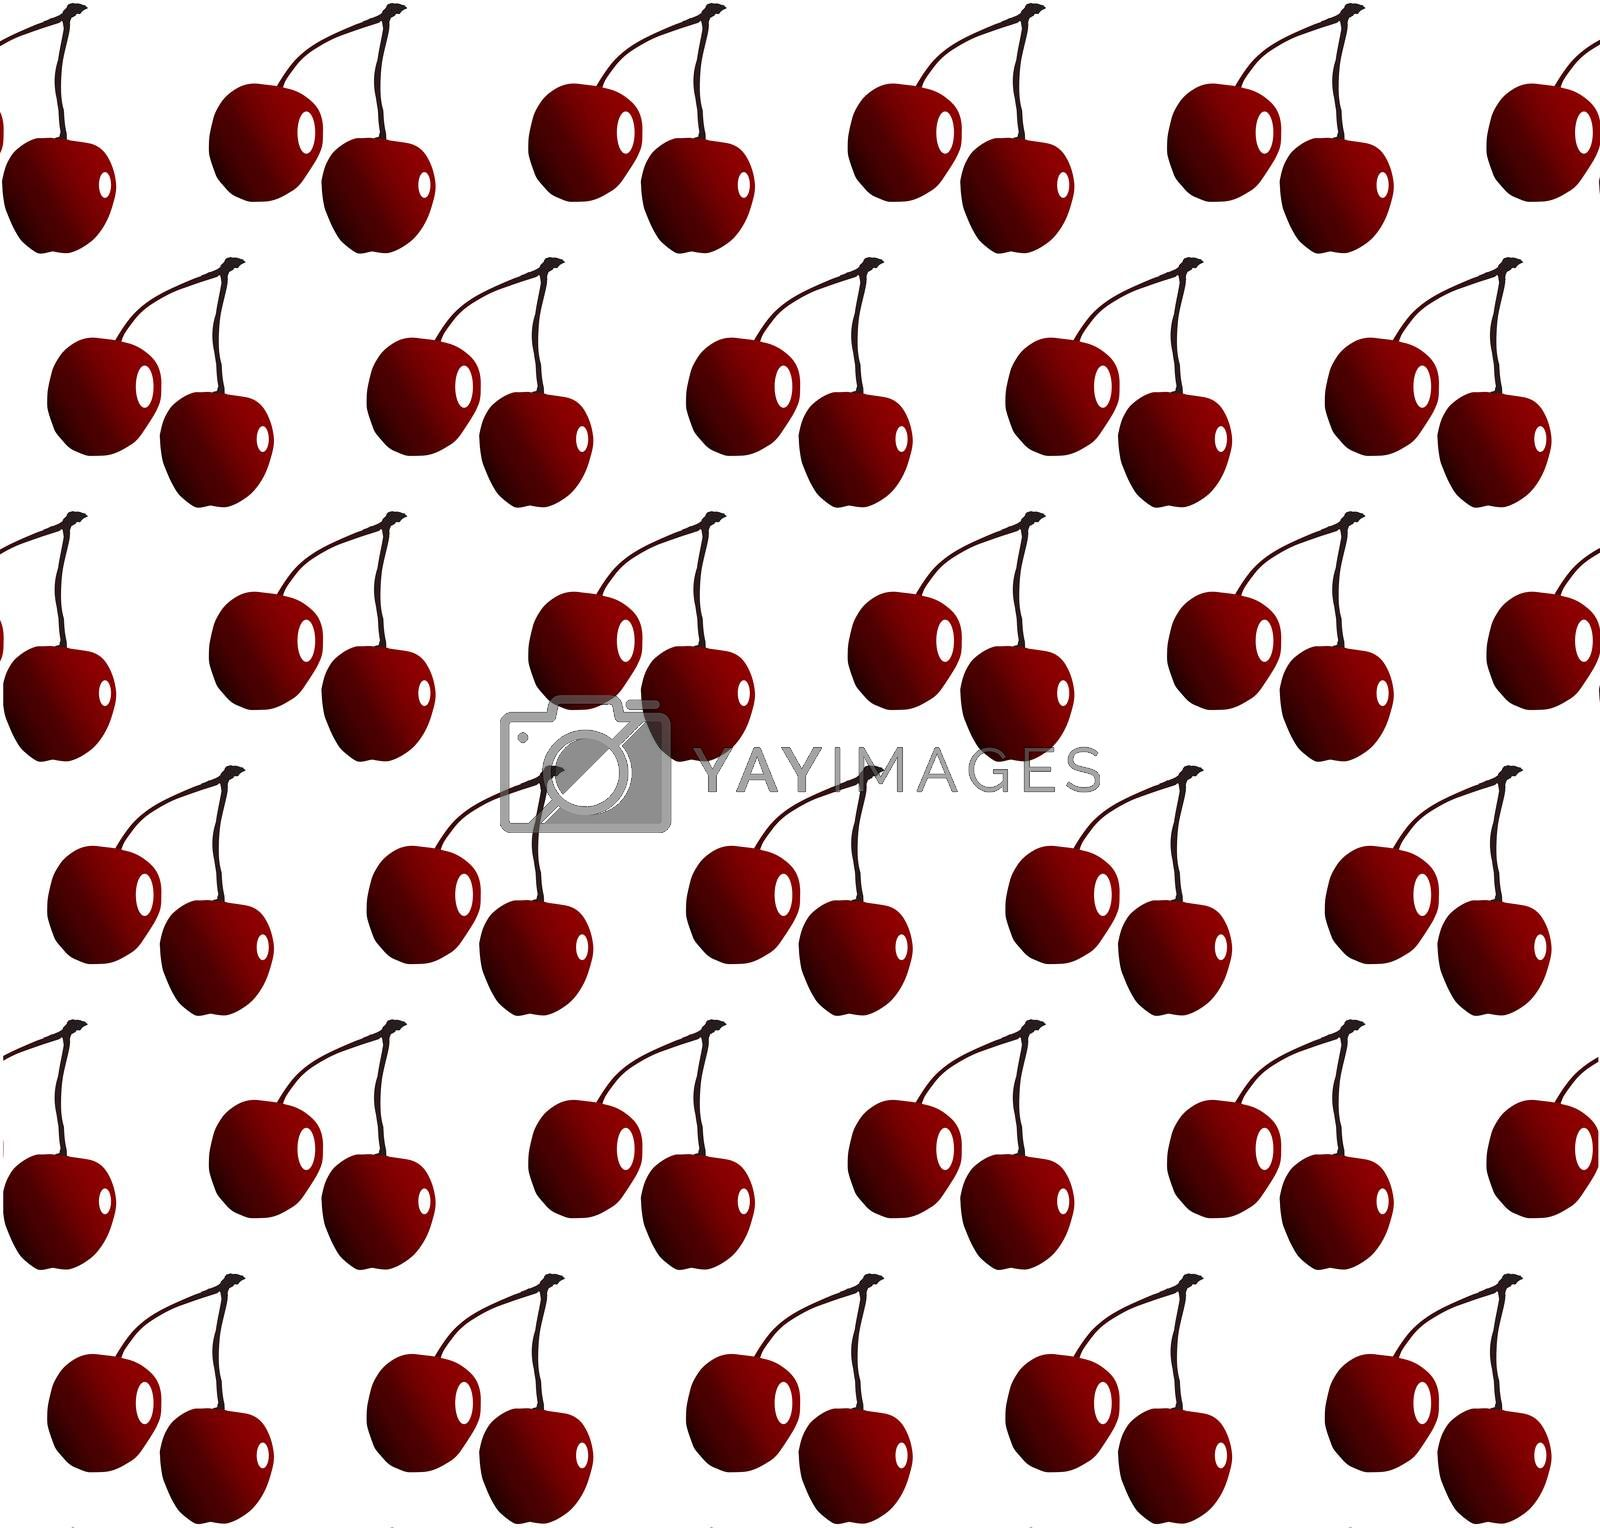 Two cheries with stalks in rows as a seamless pattern isolated on a white background